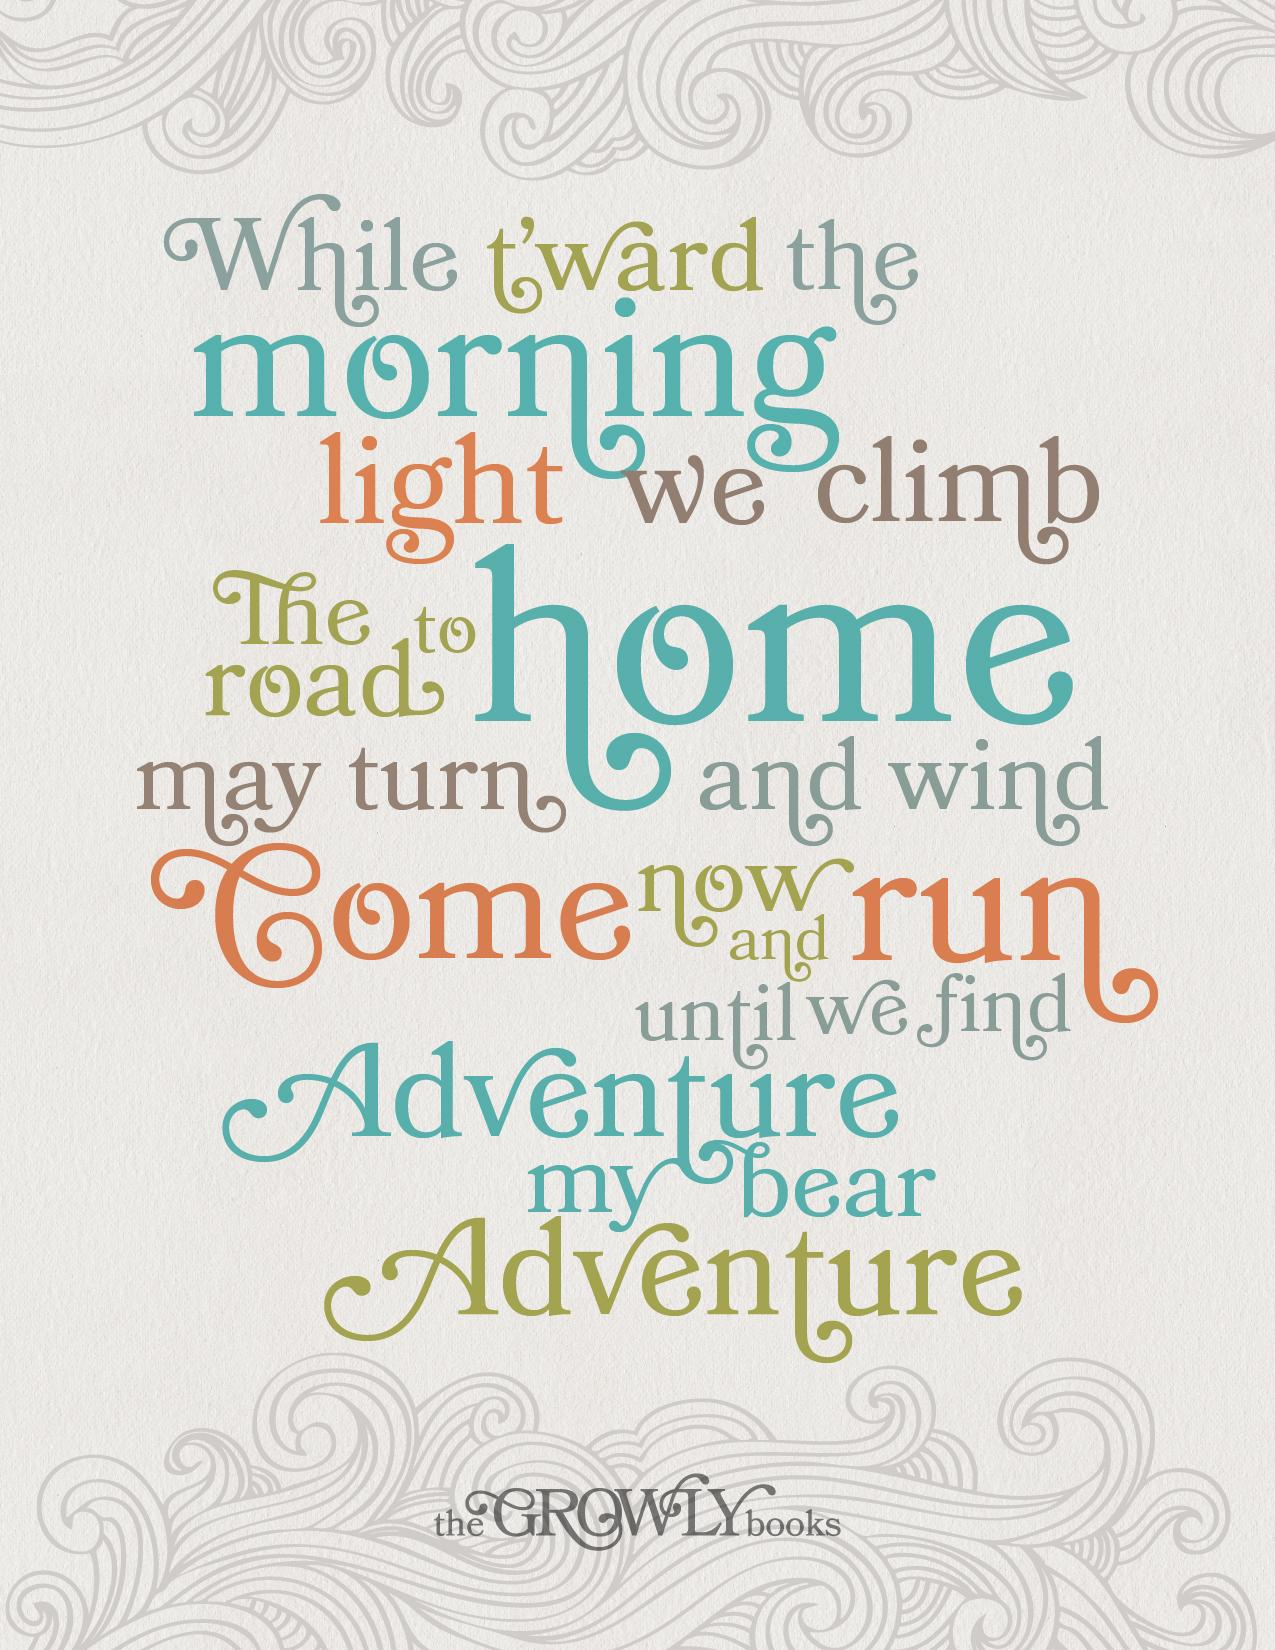 The Growly Books - Adventure My Bear Printable